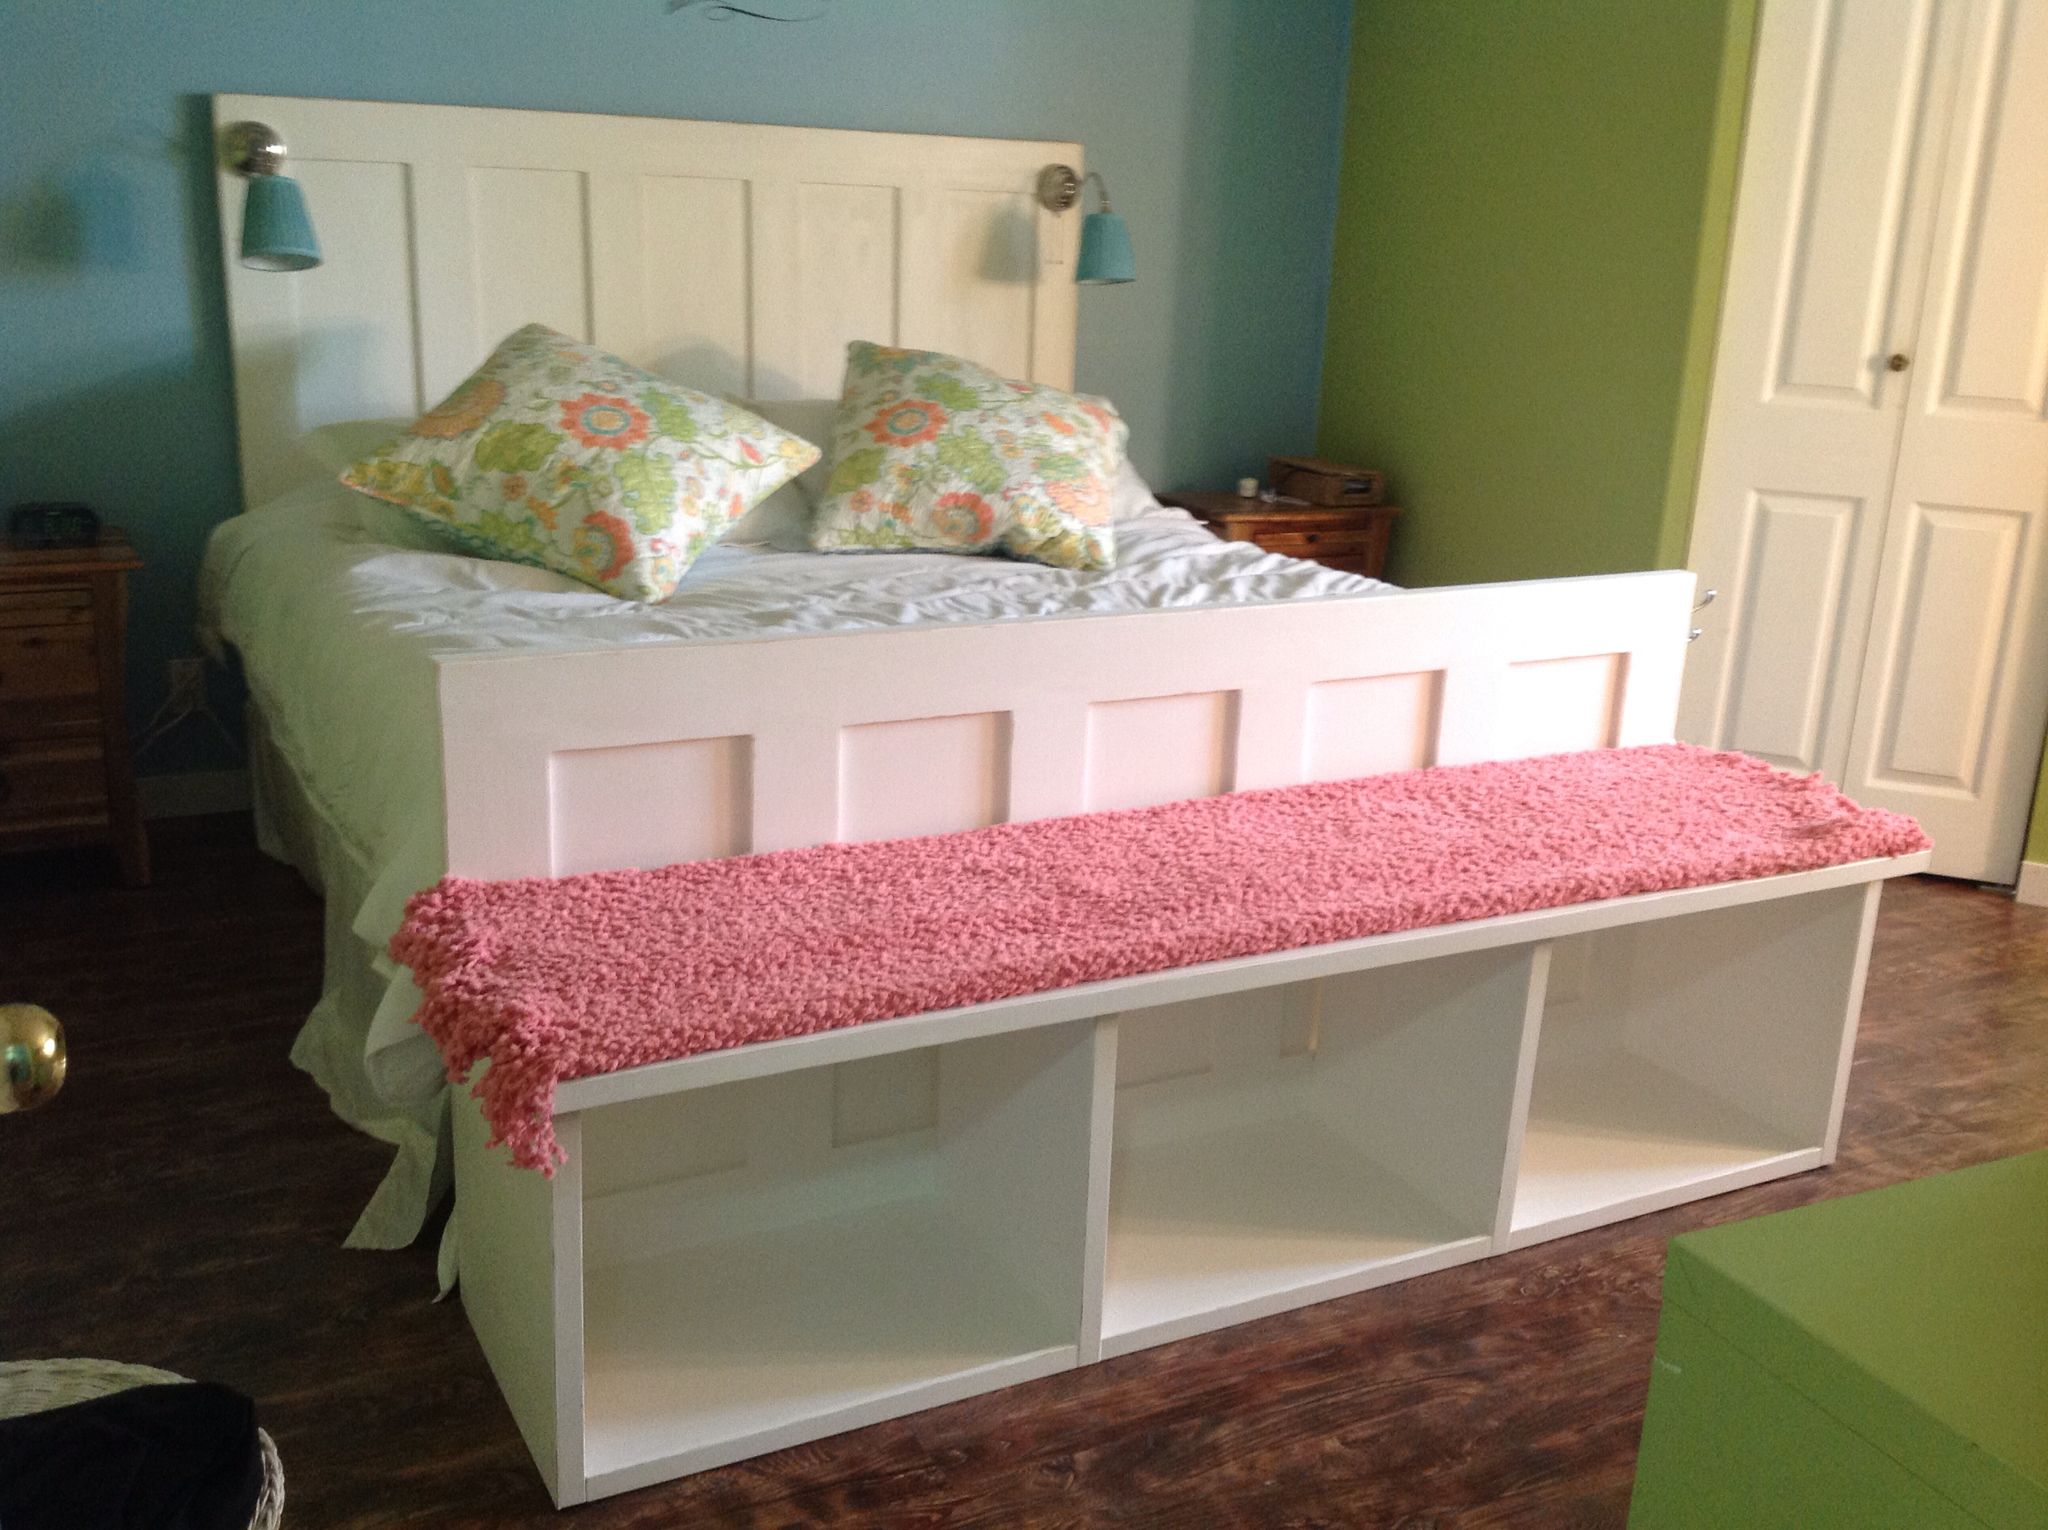 Headboard And Footboardstorage Bench Made From Doors